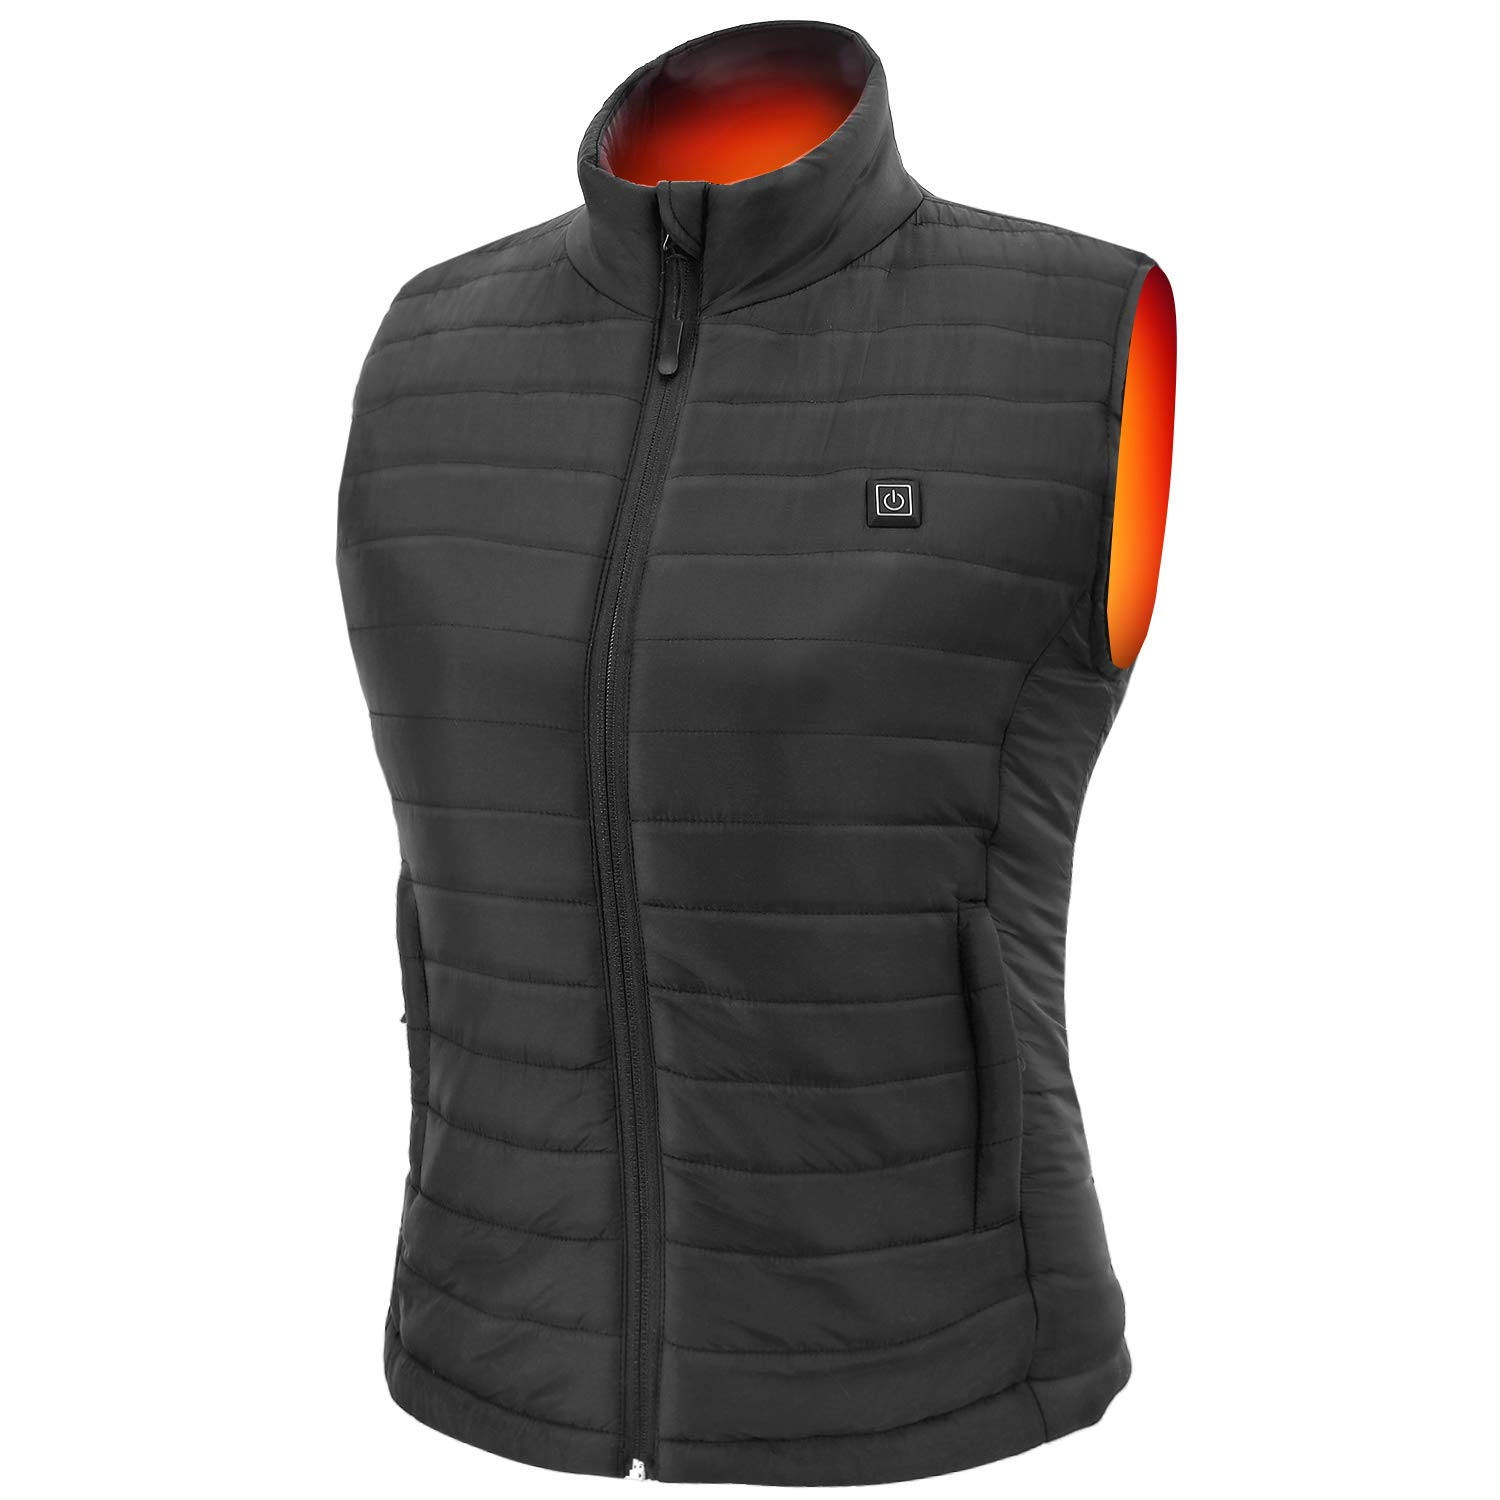 Sunbond Heated Vest with Battery Pack, Electric Warm Gilet Adjustable Temperature, Women's Heated Vest for Outdoor Winter Black by Sunbond